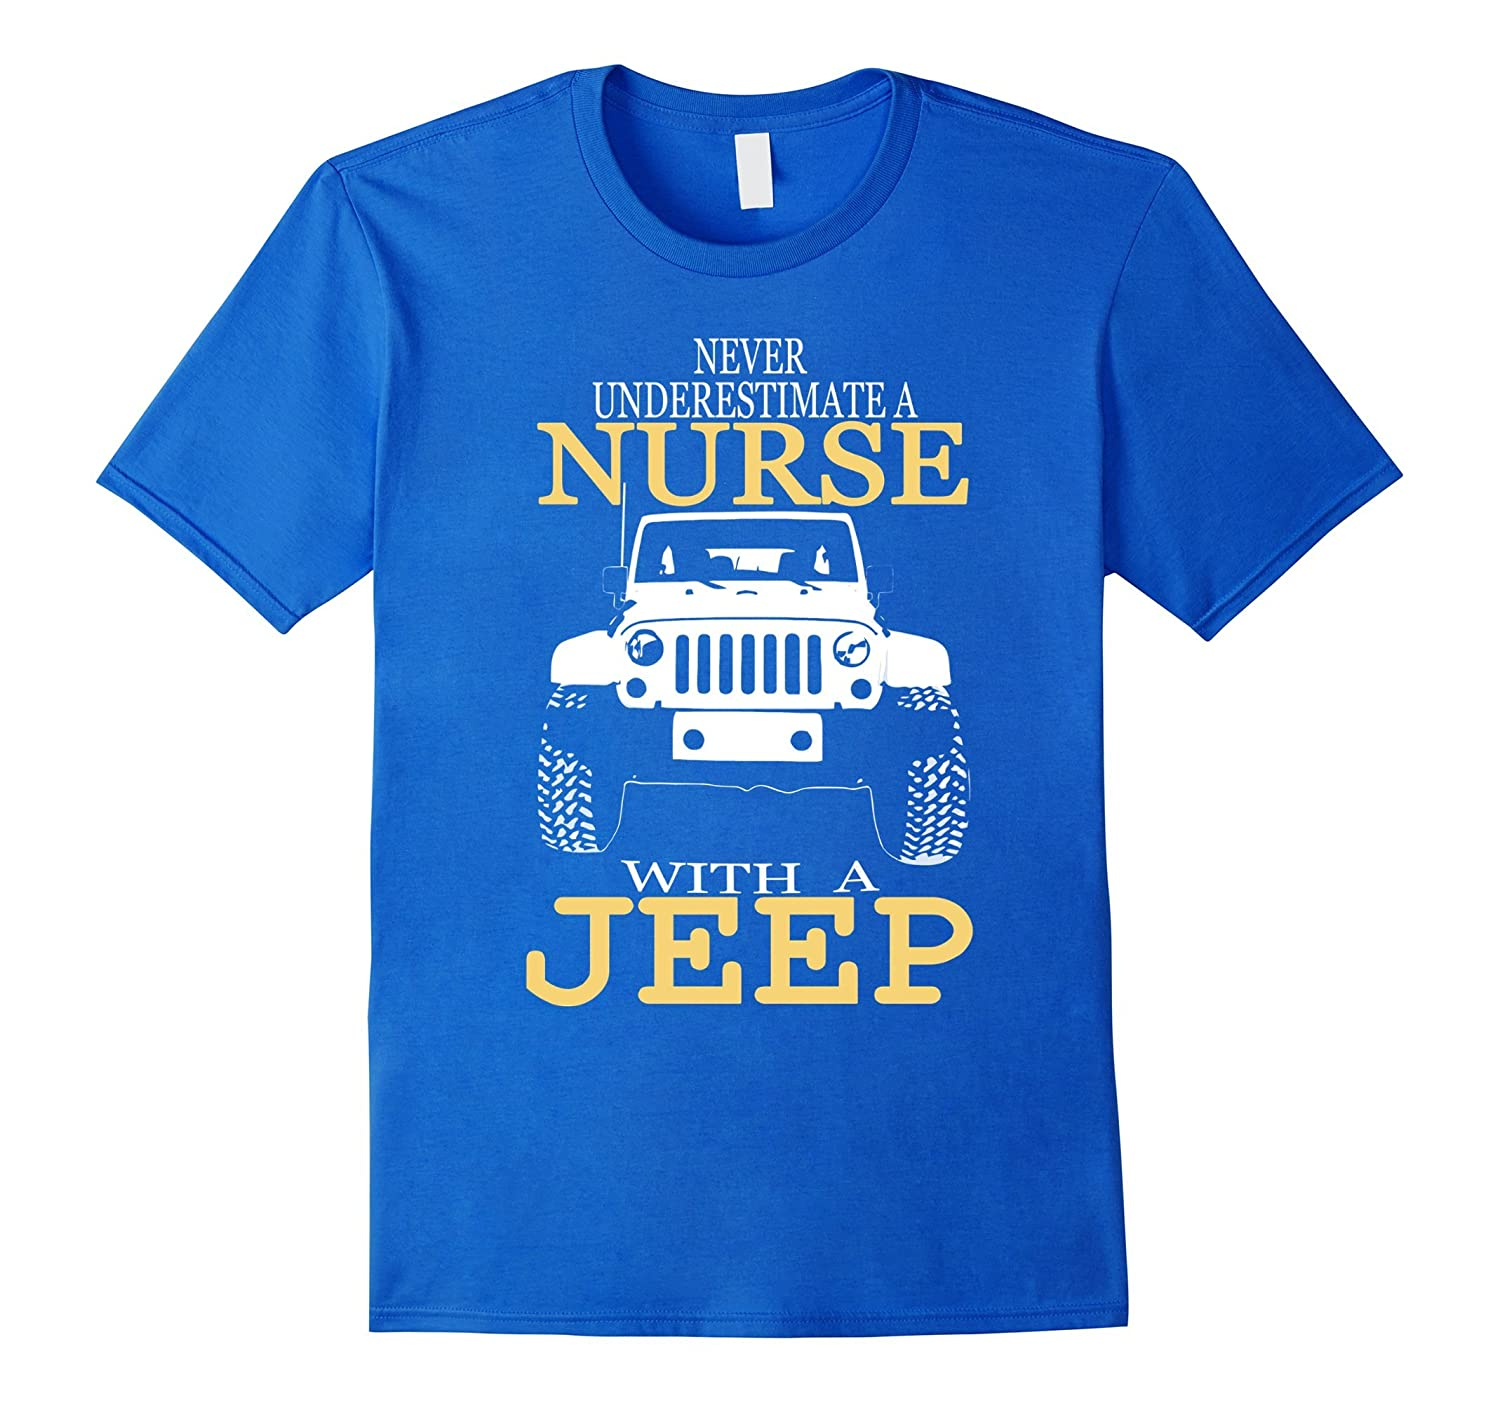 Nurse Shirts For Women - Nurse With A Jeep Graphic Tee.-CL